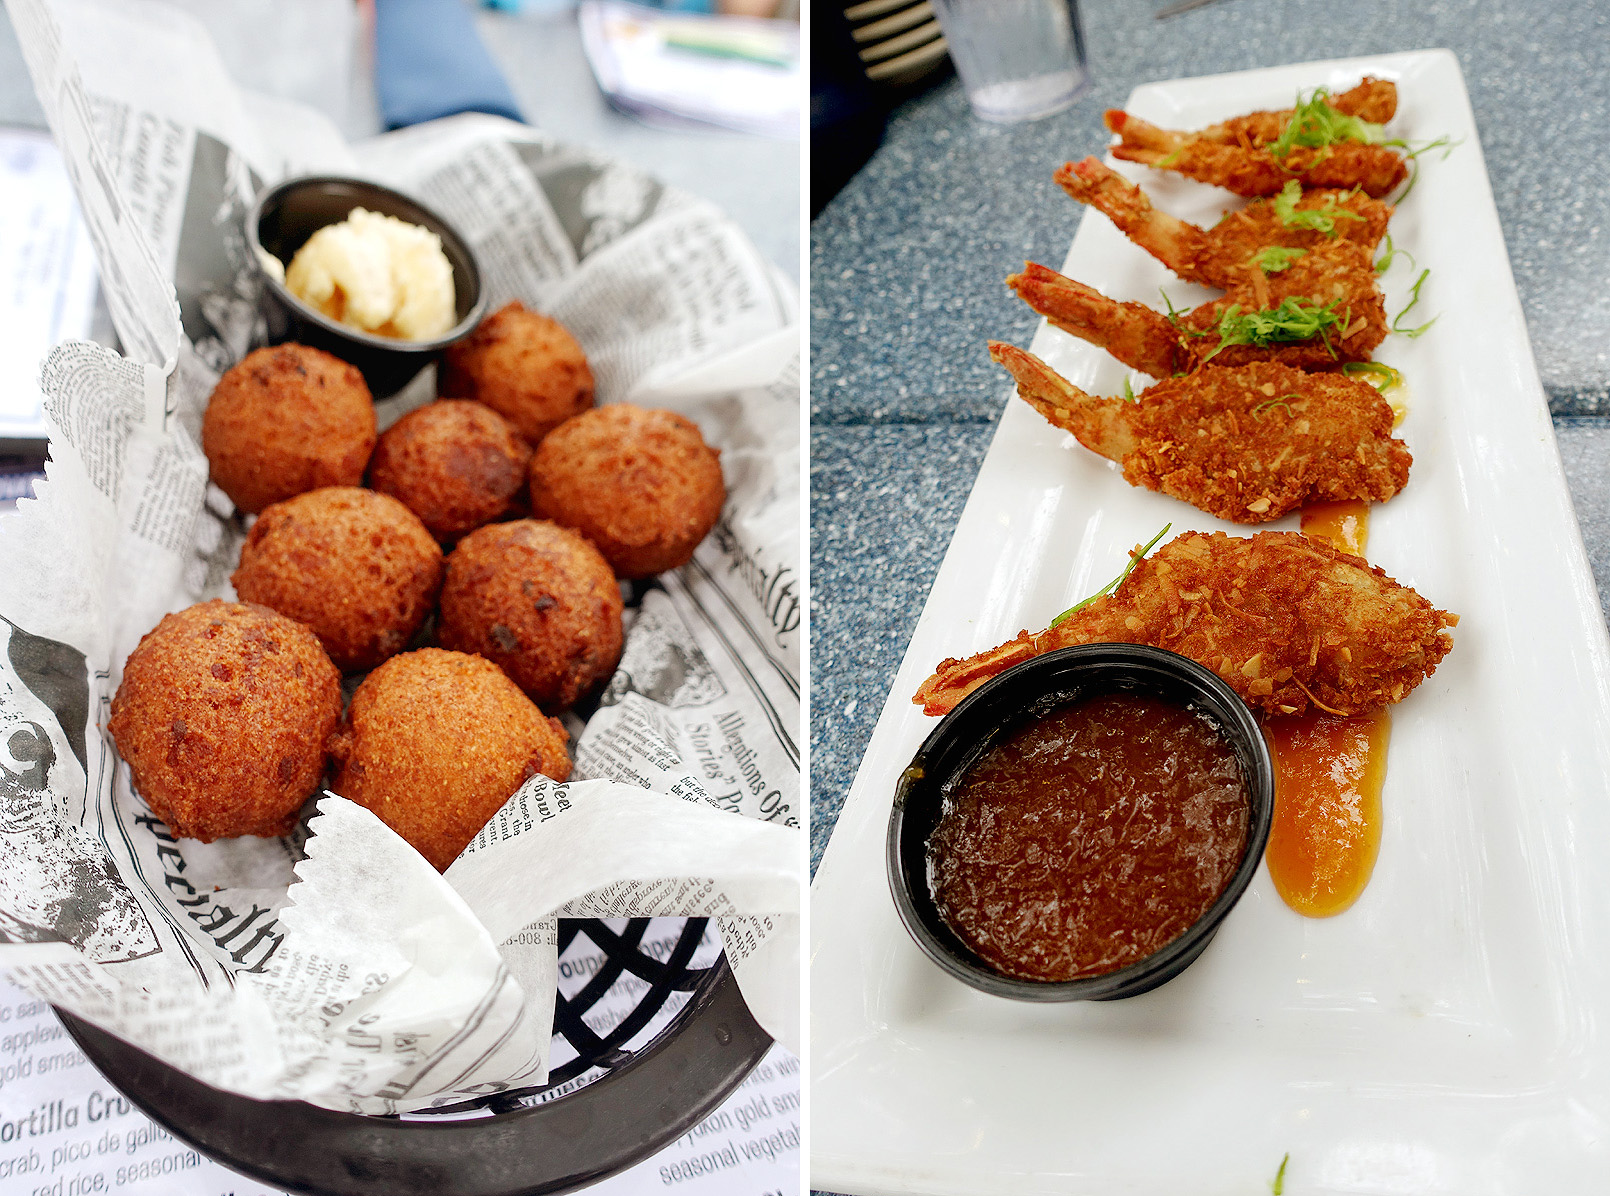 Skull-Creek-Boathouse-Hush-Puppies-and-Coconut-Shrimp